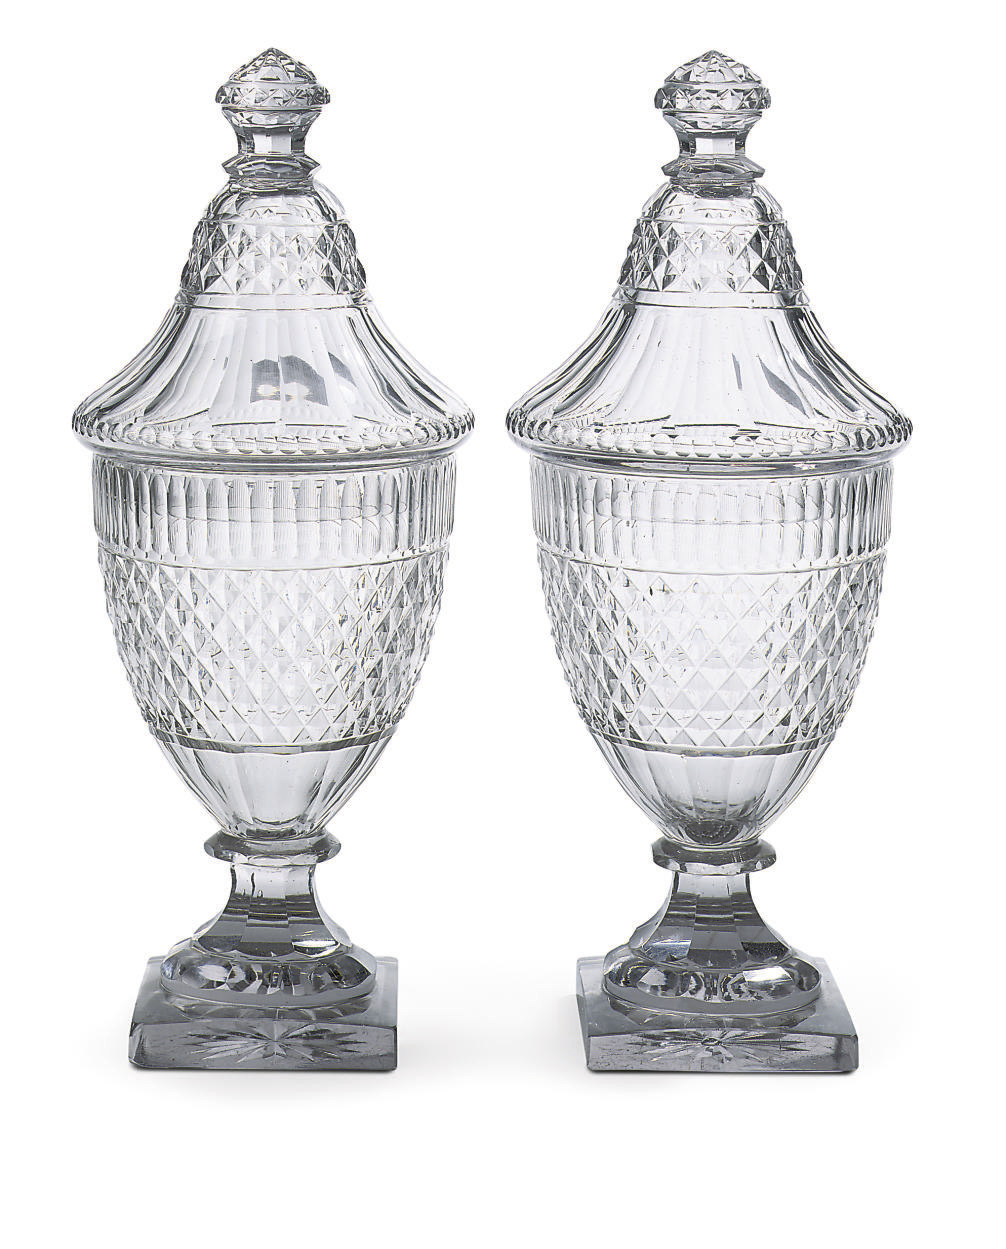 A pair of Baccarat or Voneche